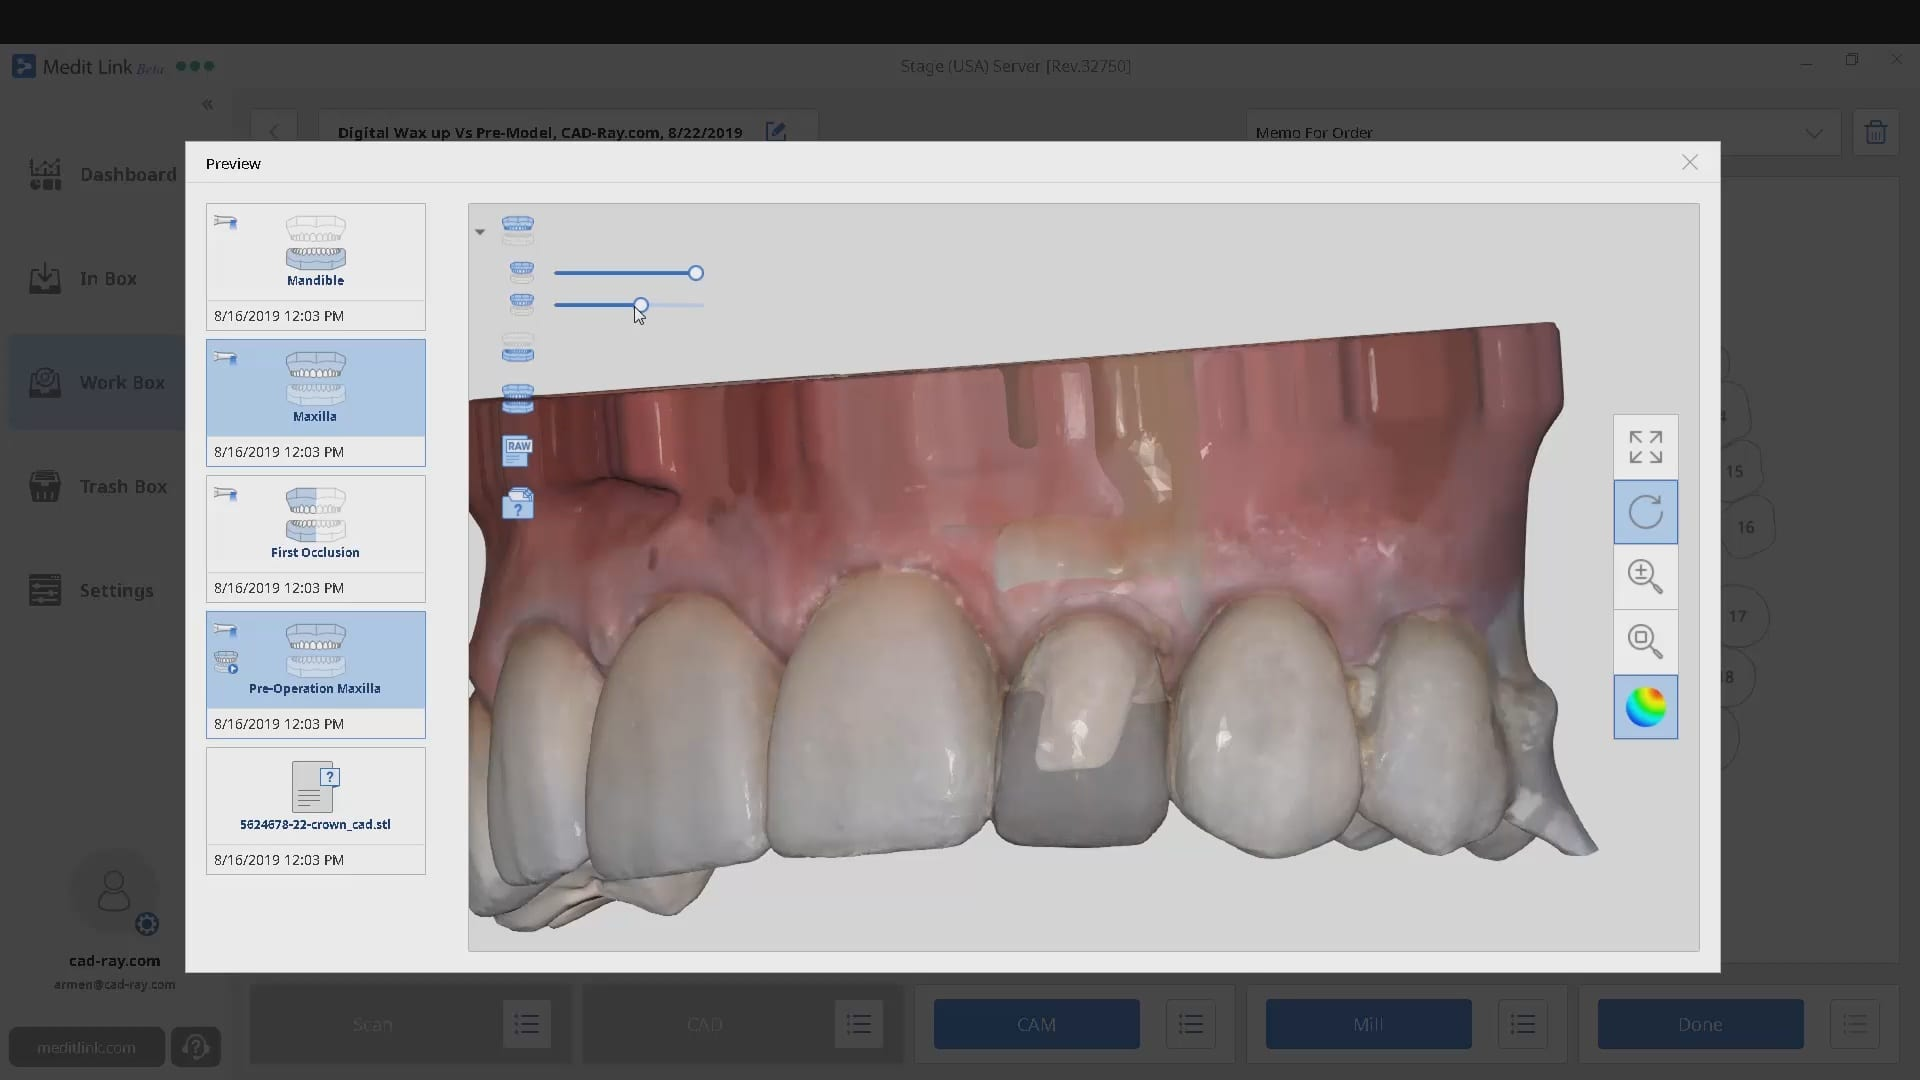 Digital Copy Milling Vs. Scan Pre-Op Model